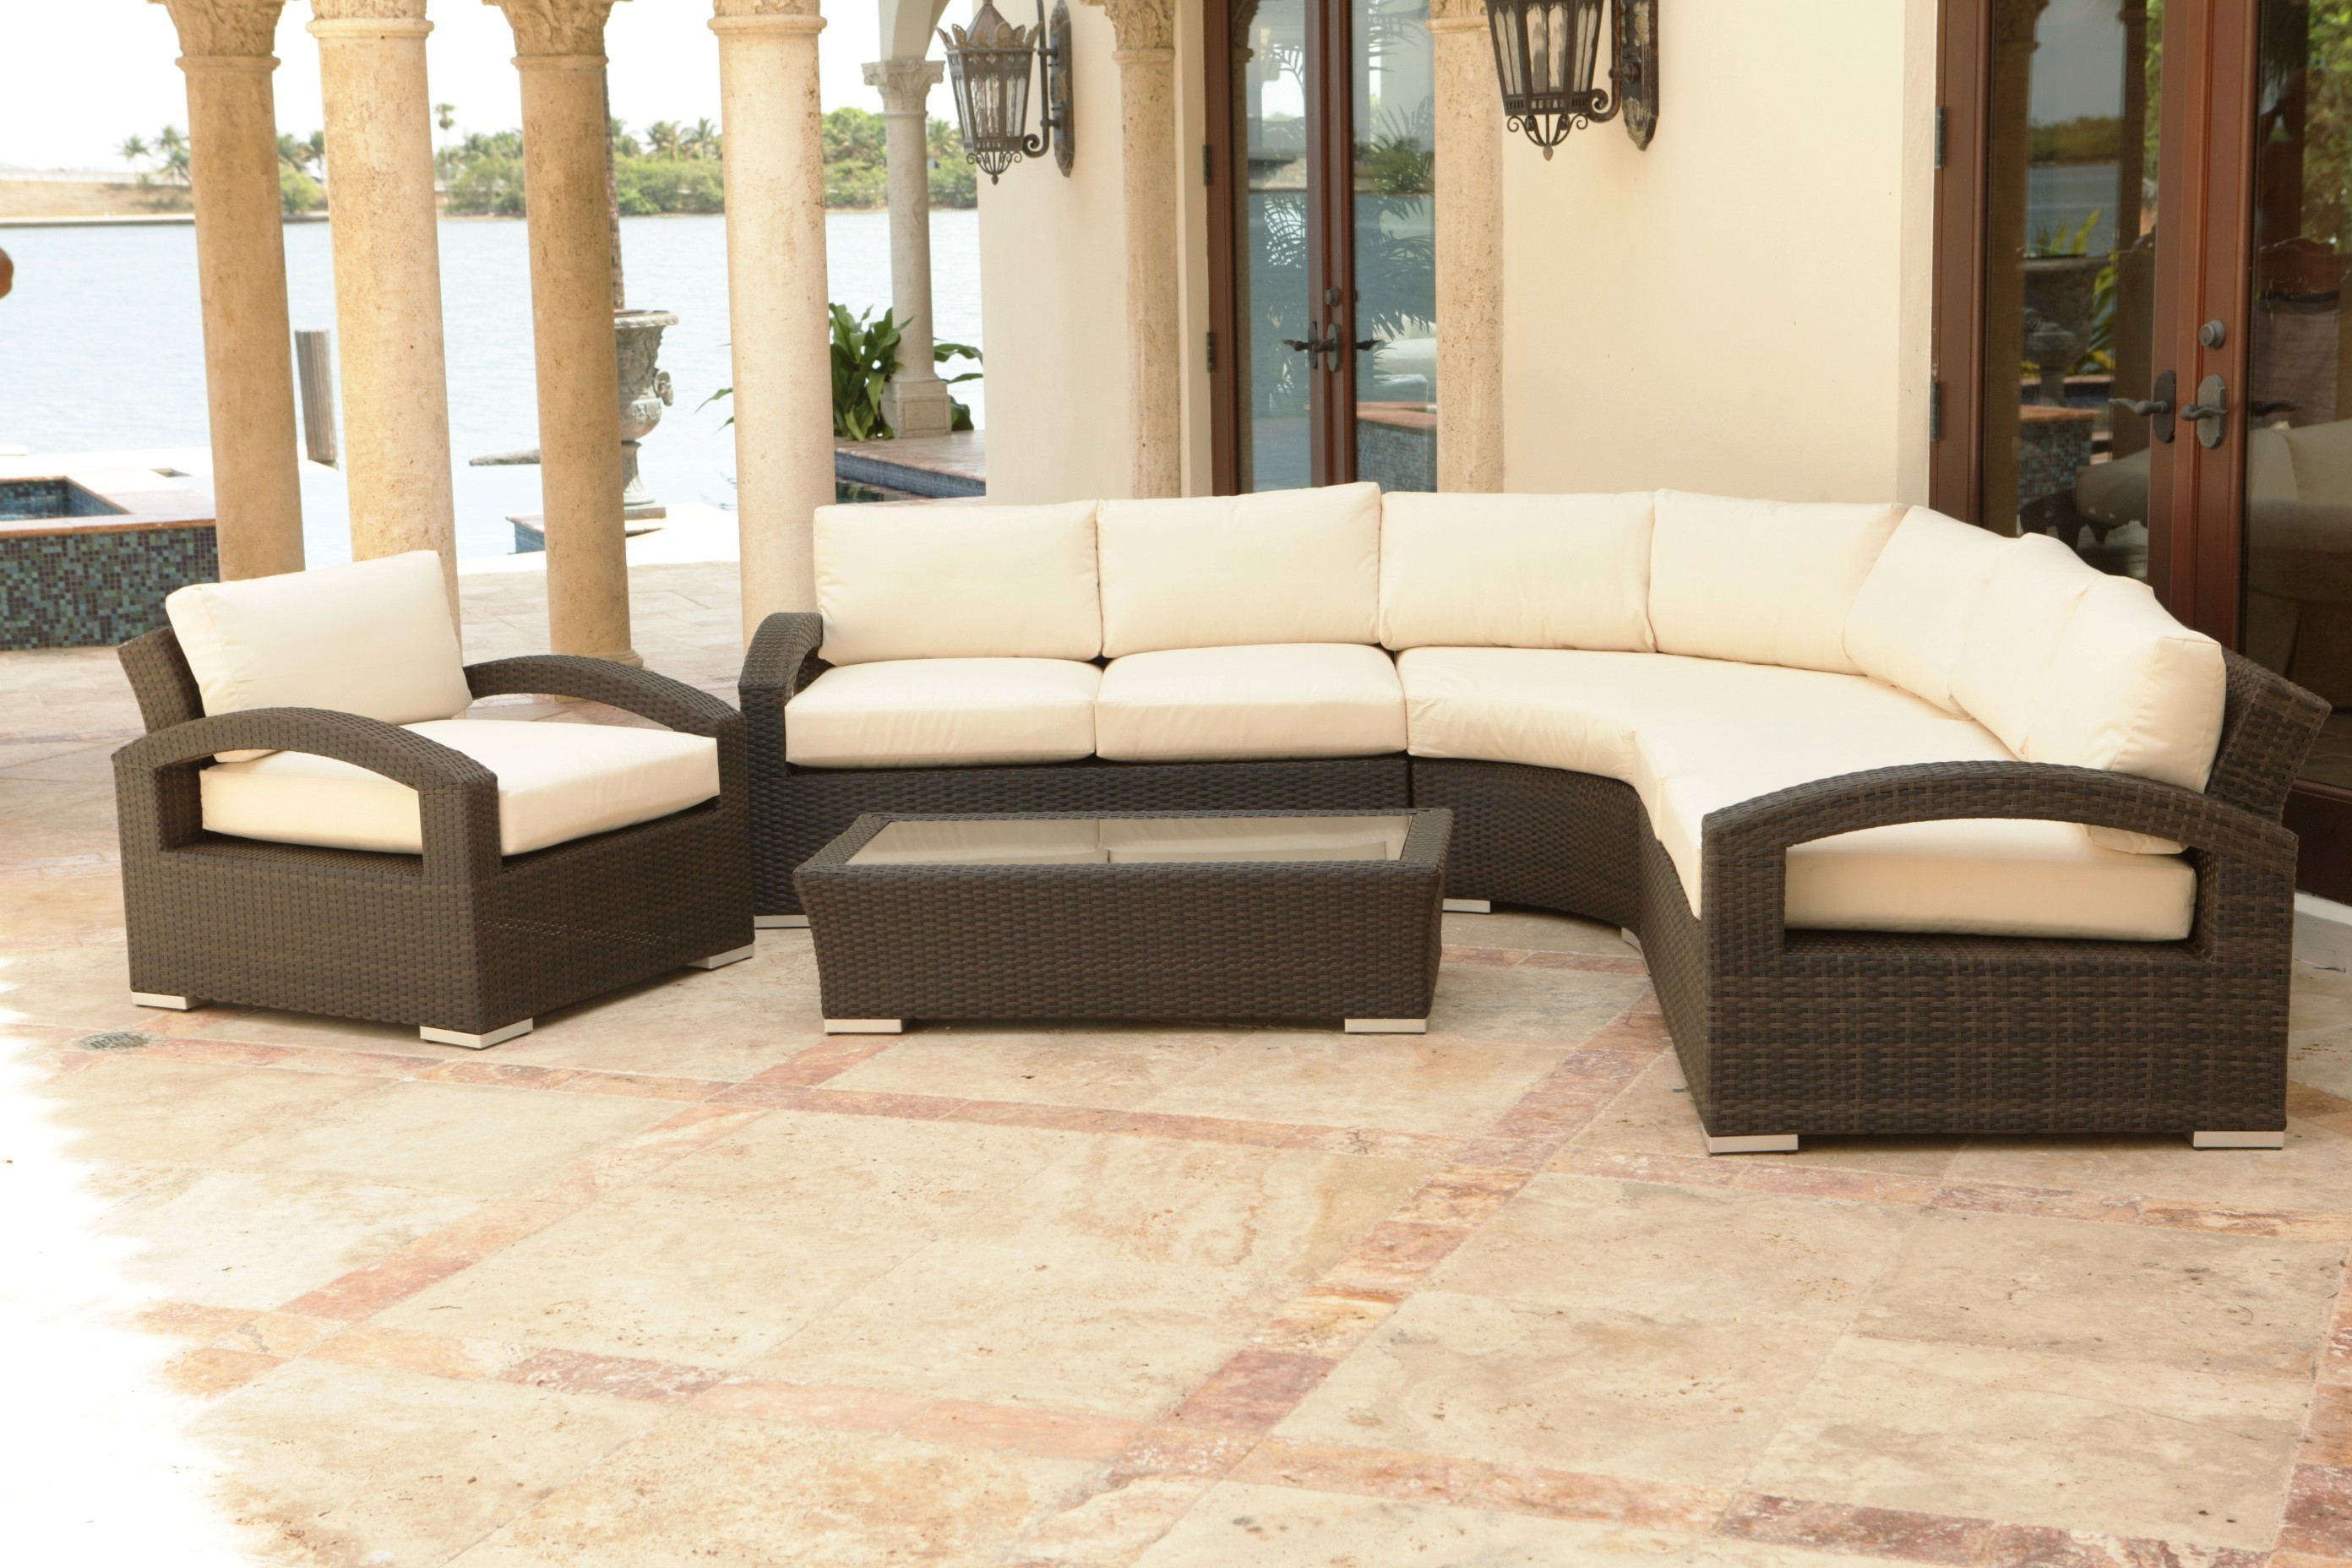 durable sofa bed keter rattan effect outdoor mini corner graphite 15 collection of sectional ideas